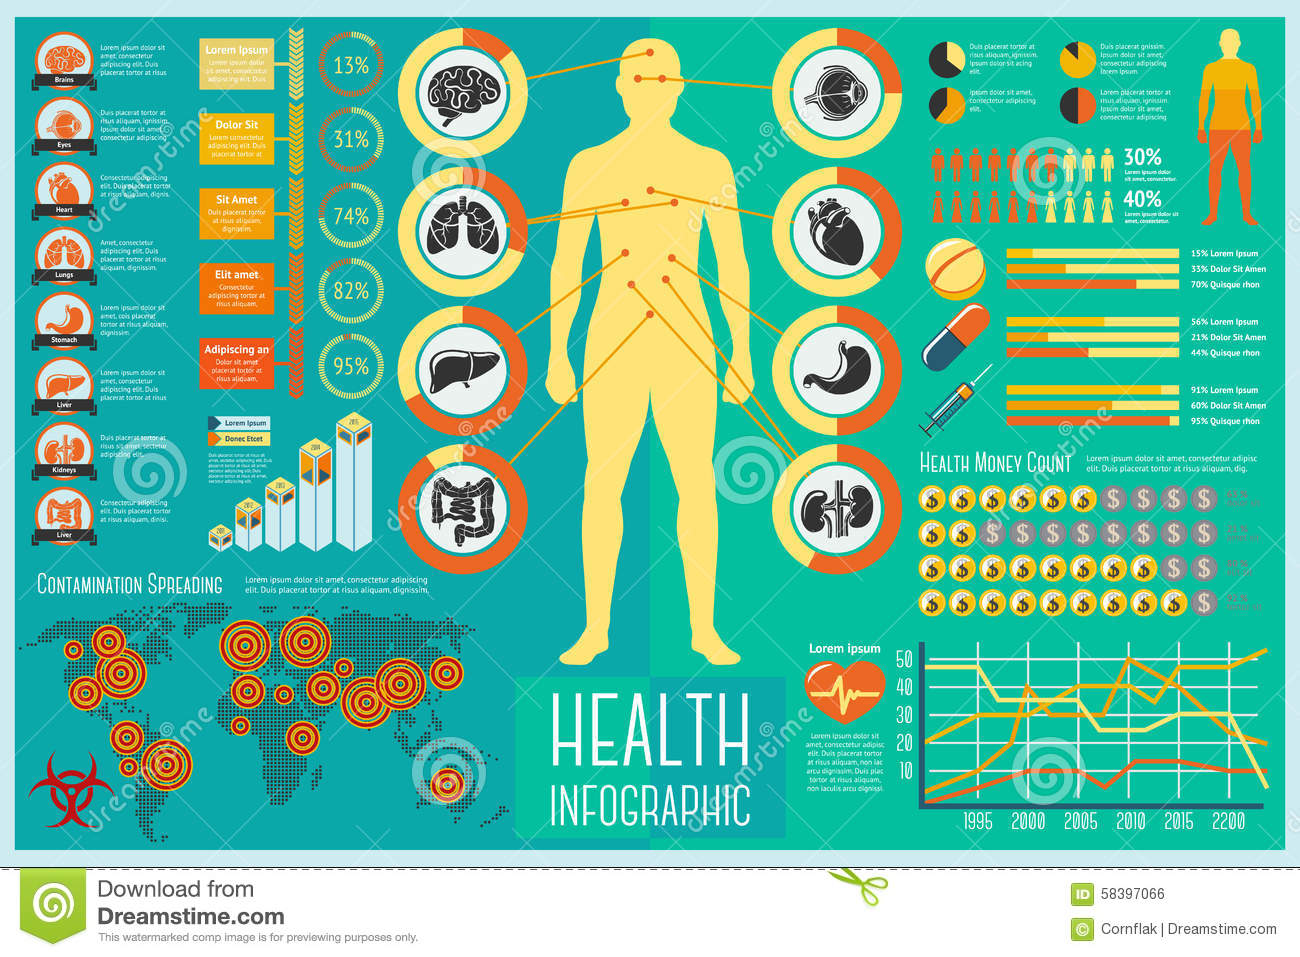 Develop a graphical taxonomy of the different health care technologies using Microsoft Excel